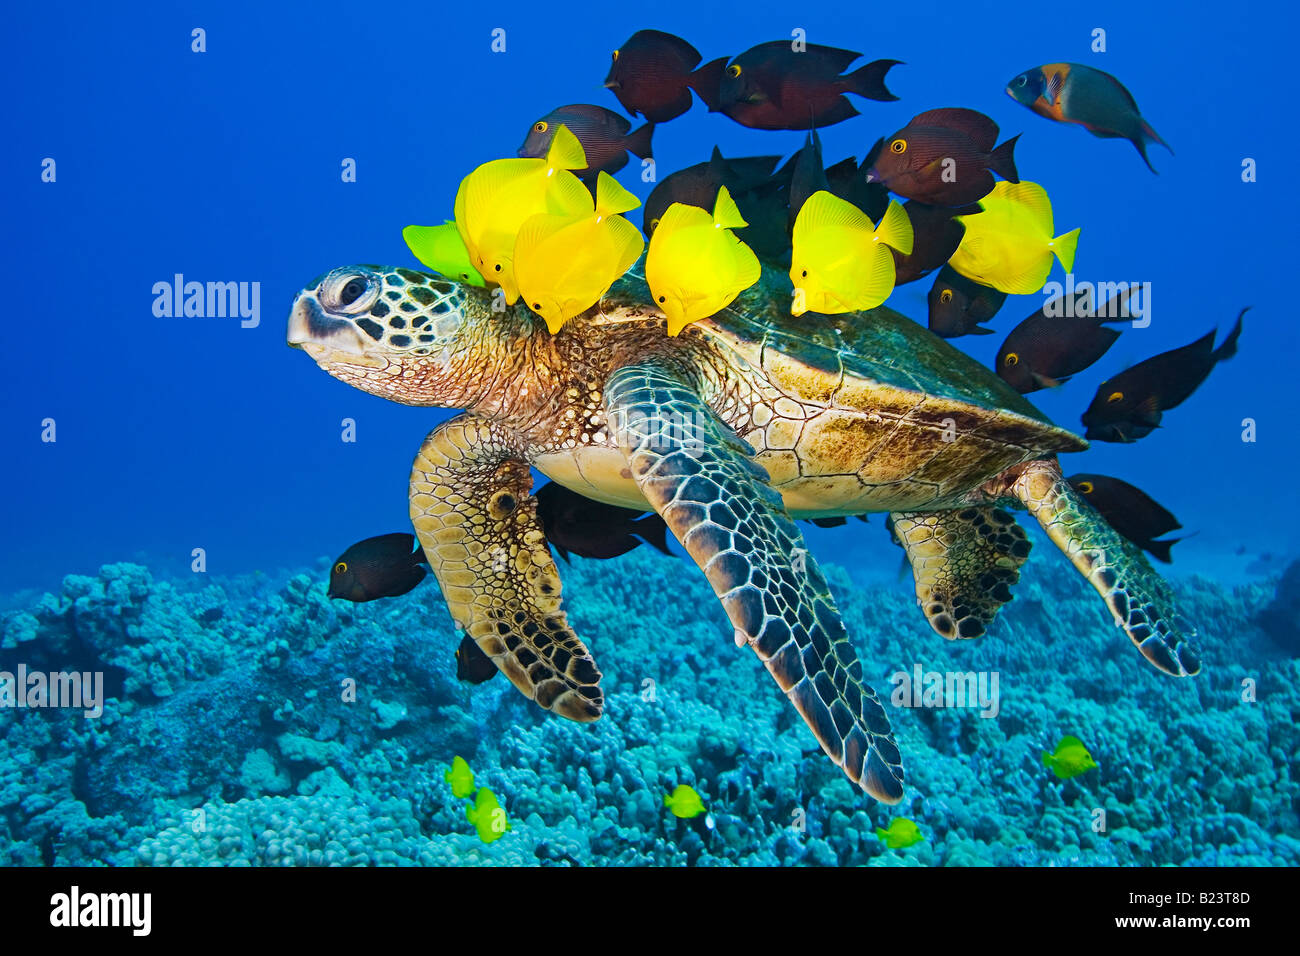 Green sea turtle being cleaned by tropical reef fish stock for Reef aquarium fish